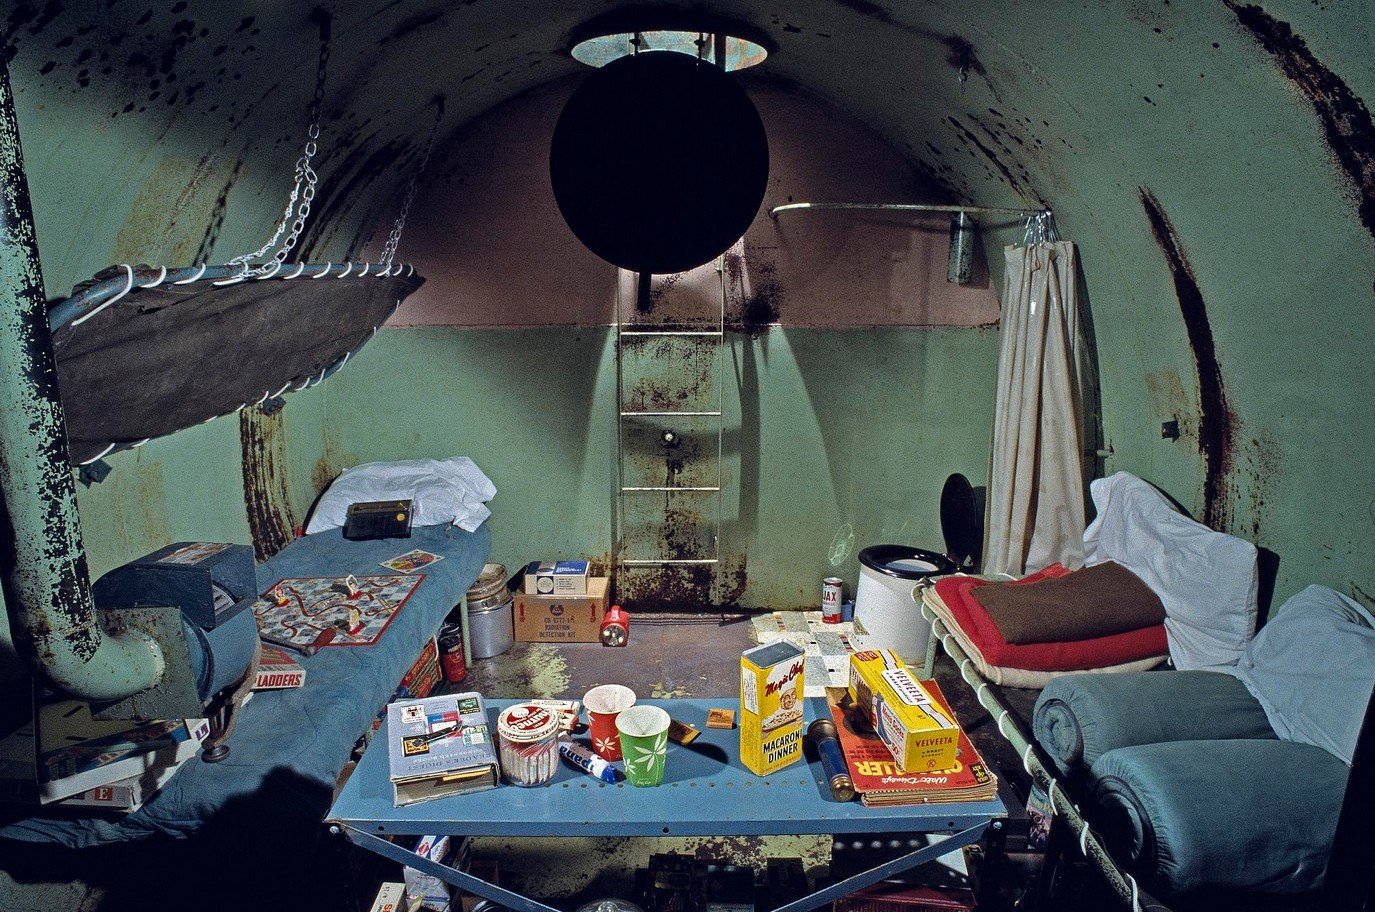 These pictures show how cozy fallout shelters were perfect for the 1950s nuclear family